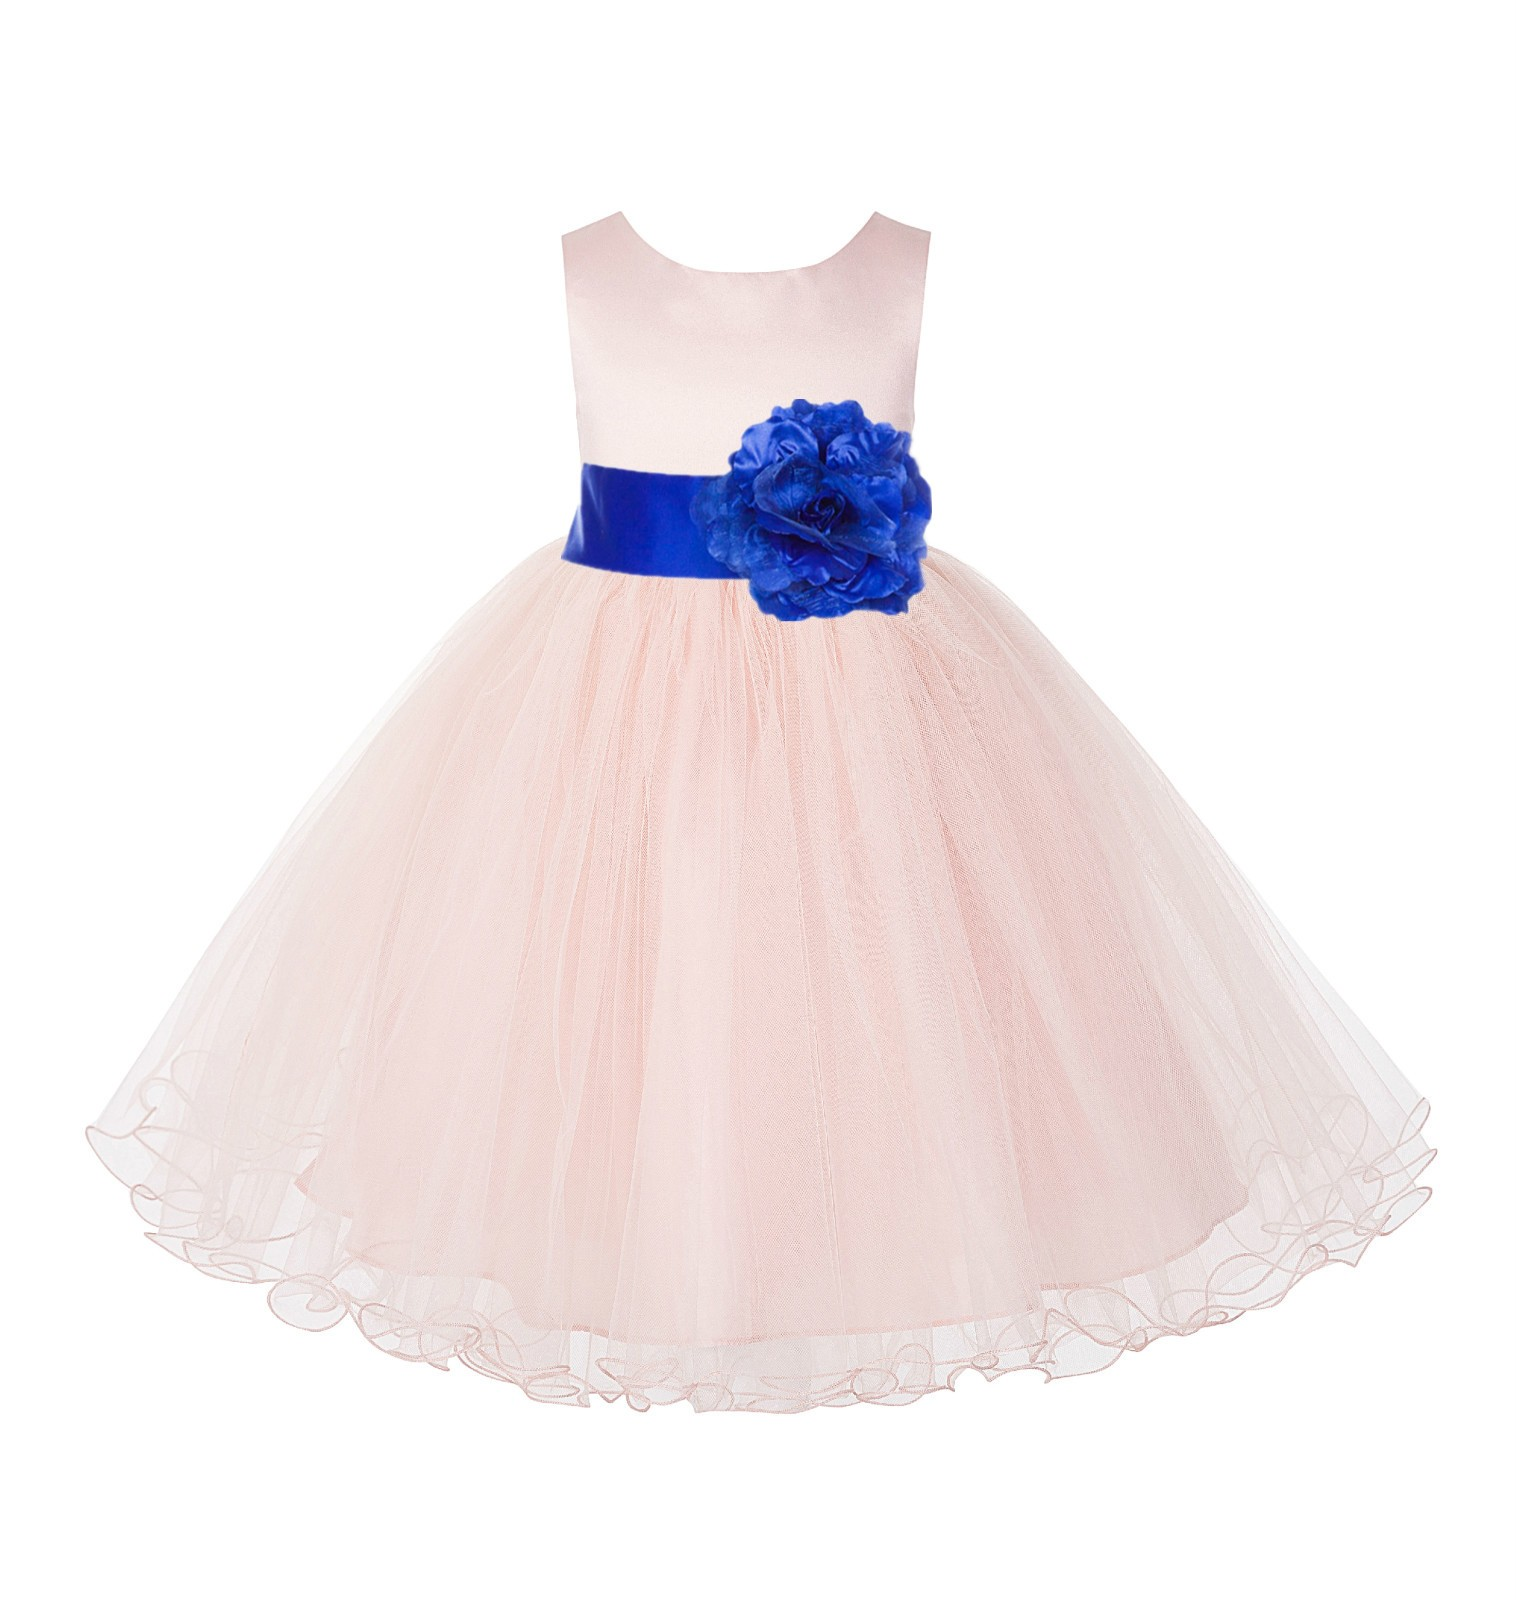 Blush Pink / Horizon Tulle Rattail Edge Flower Girl Dress Pageant Recital 829S